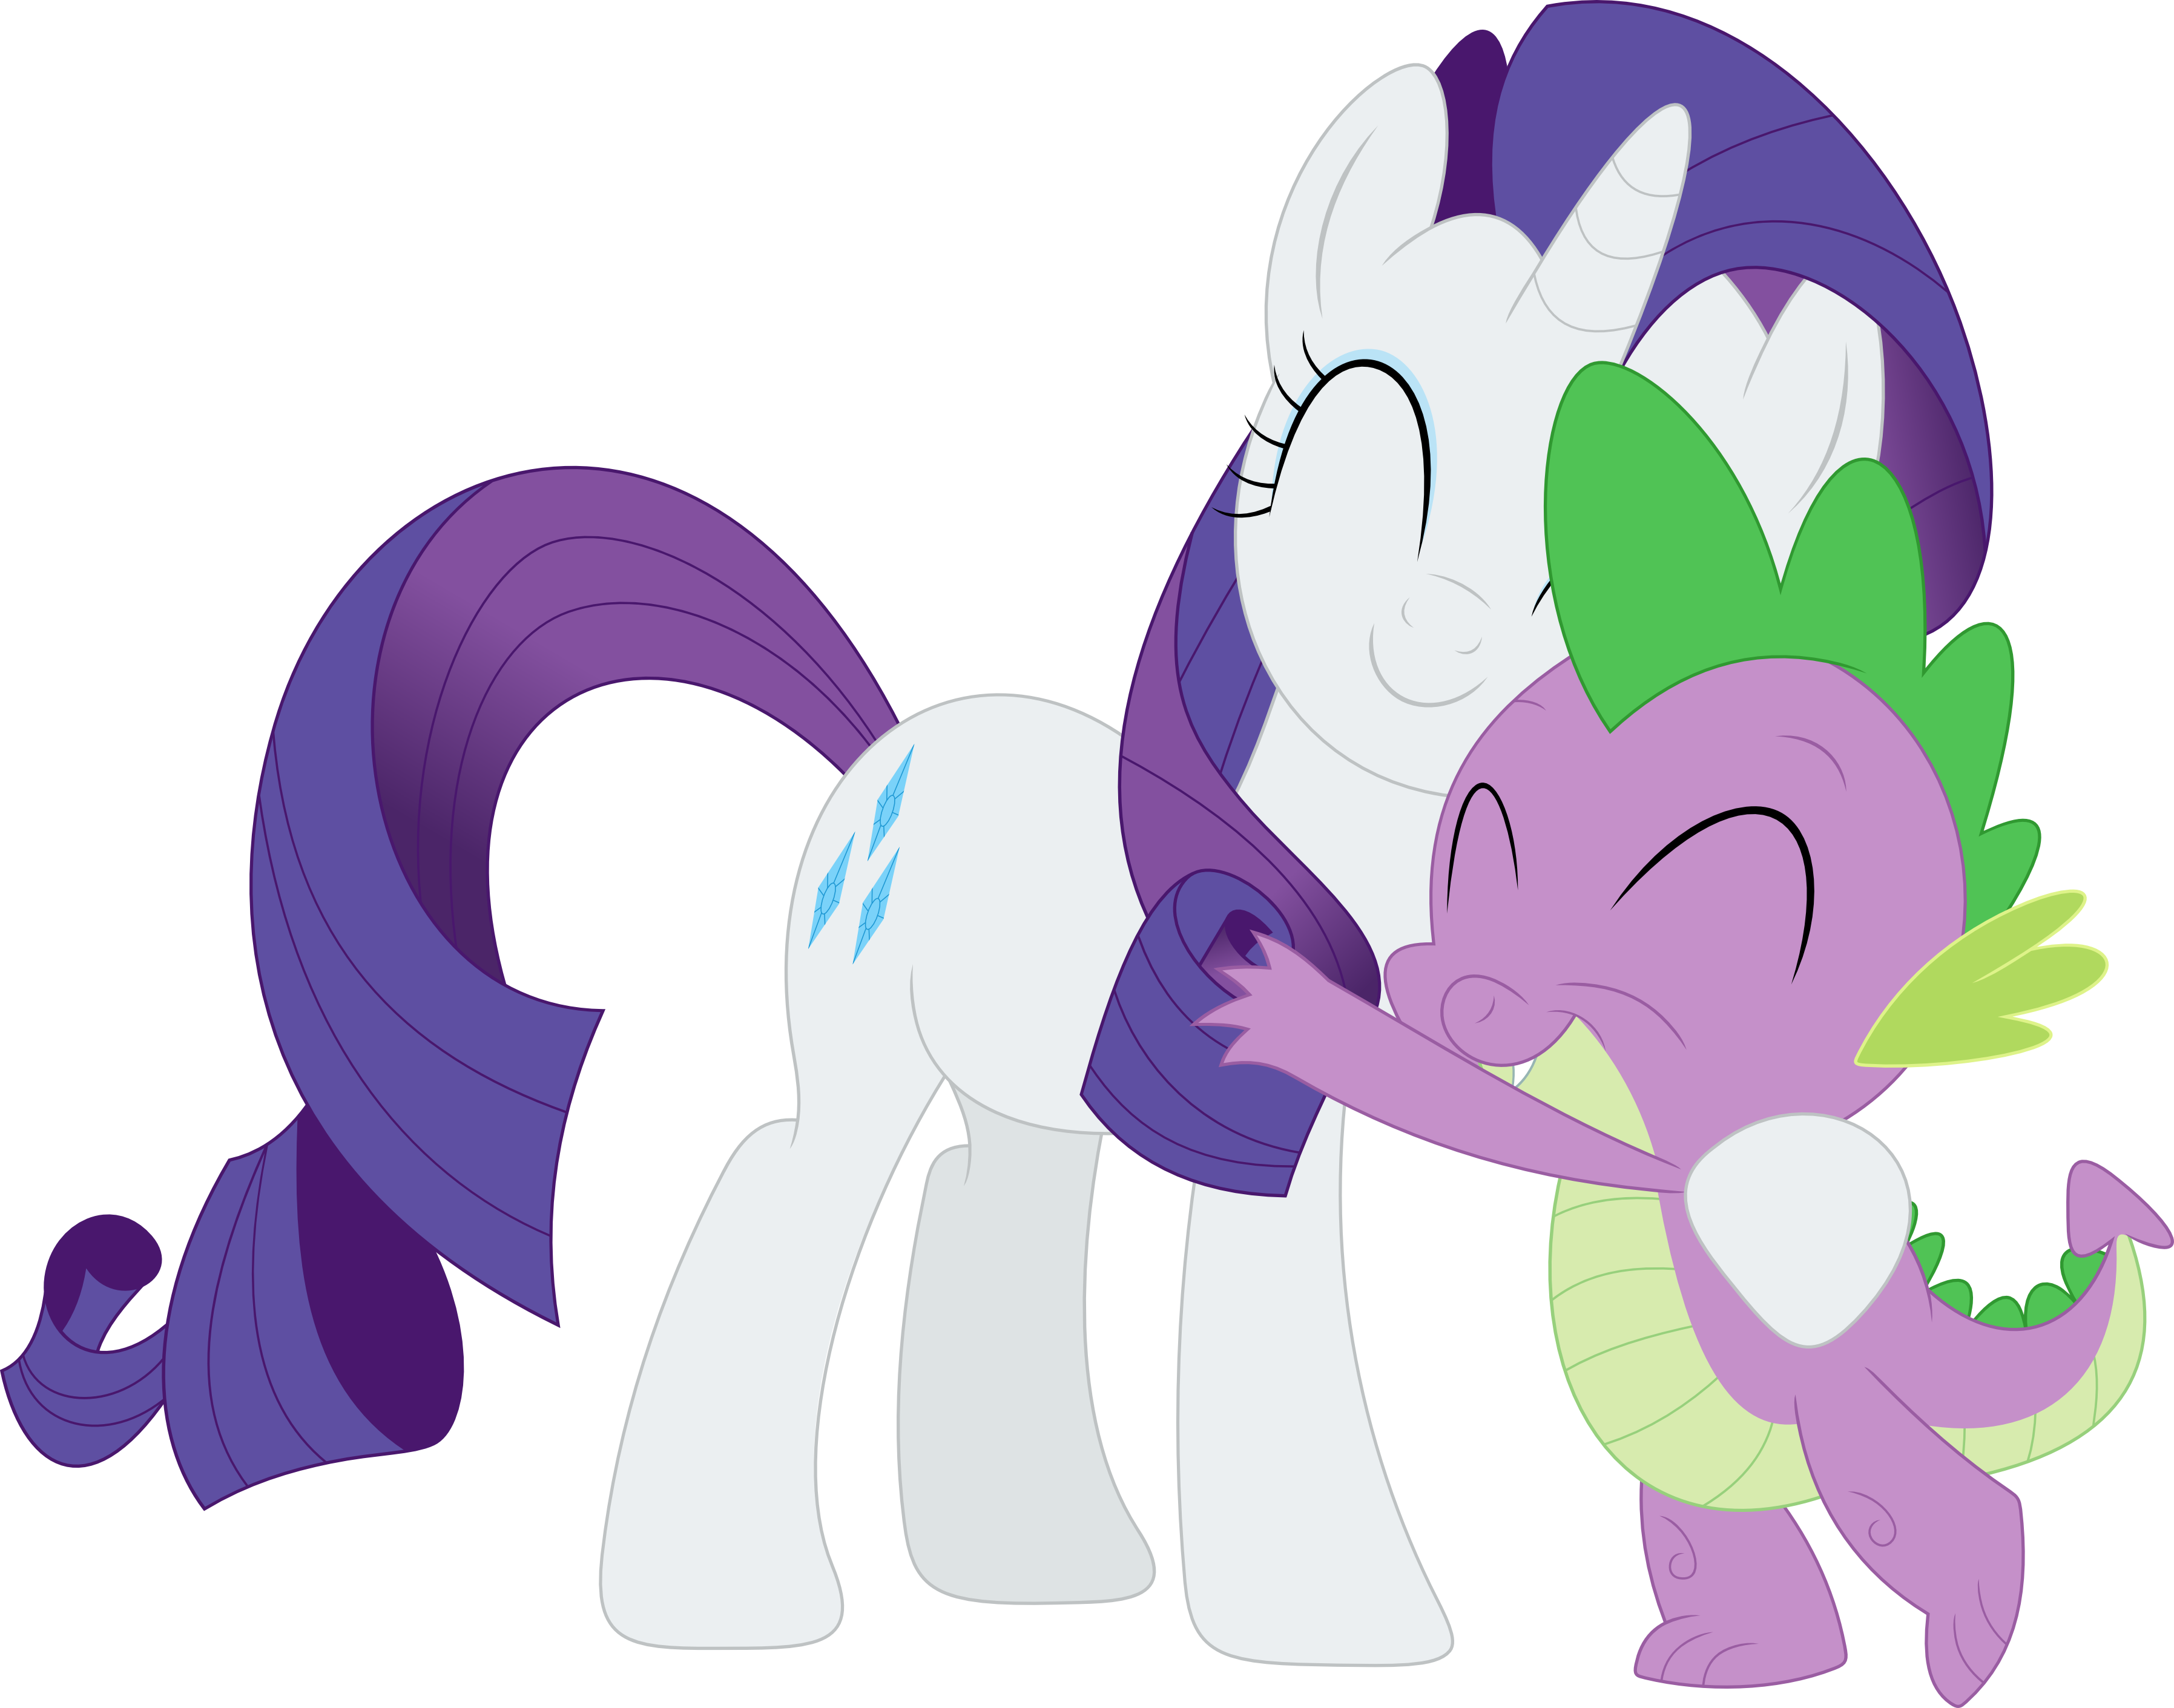 rarity and spike relationship tips